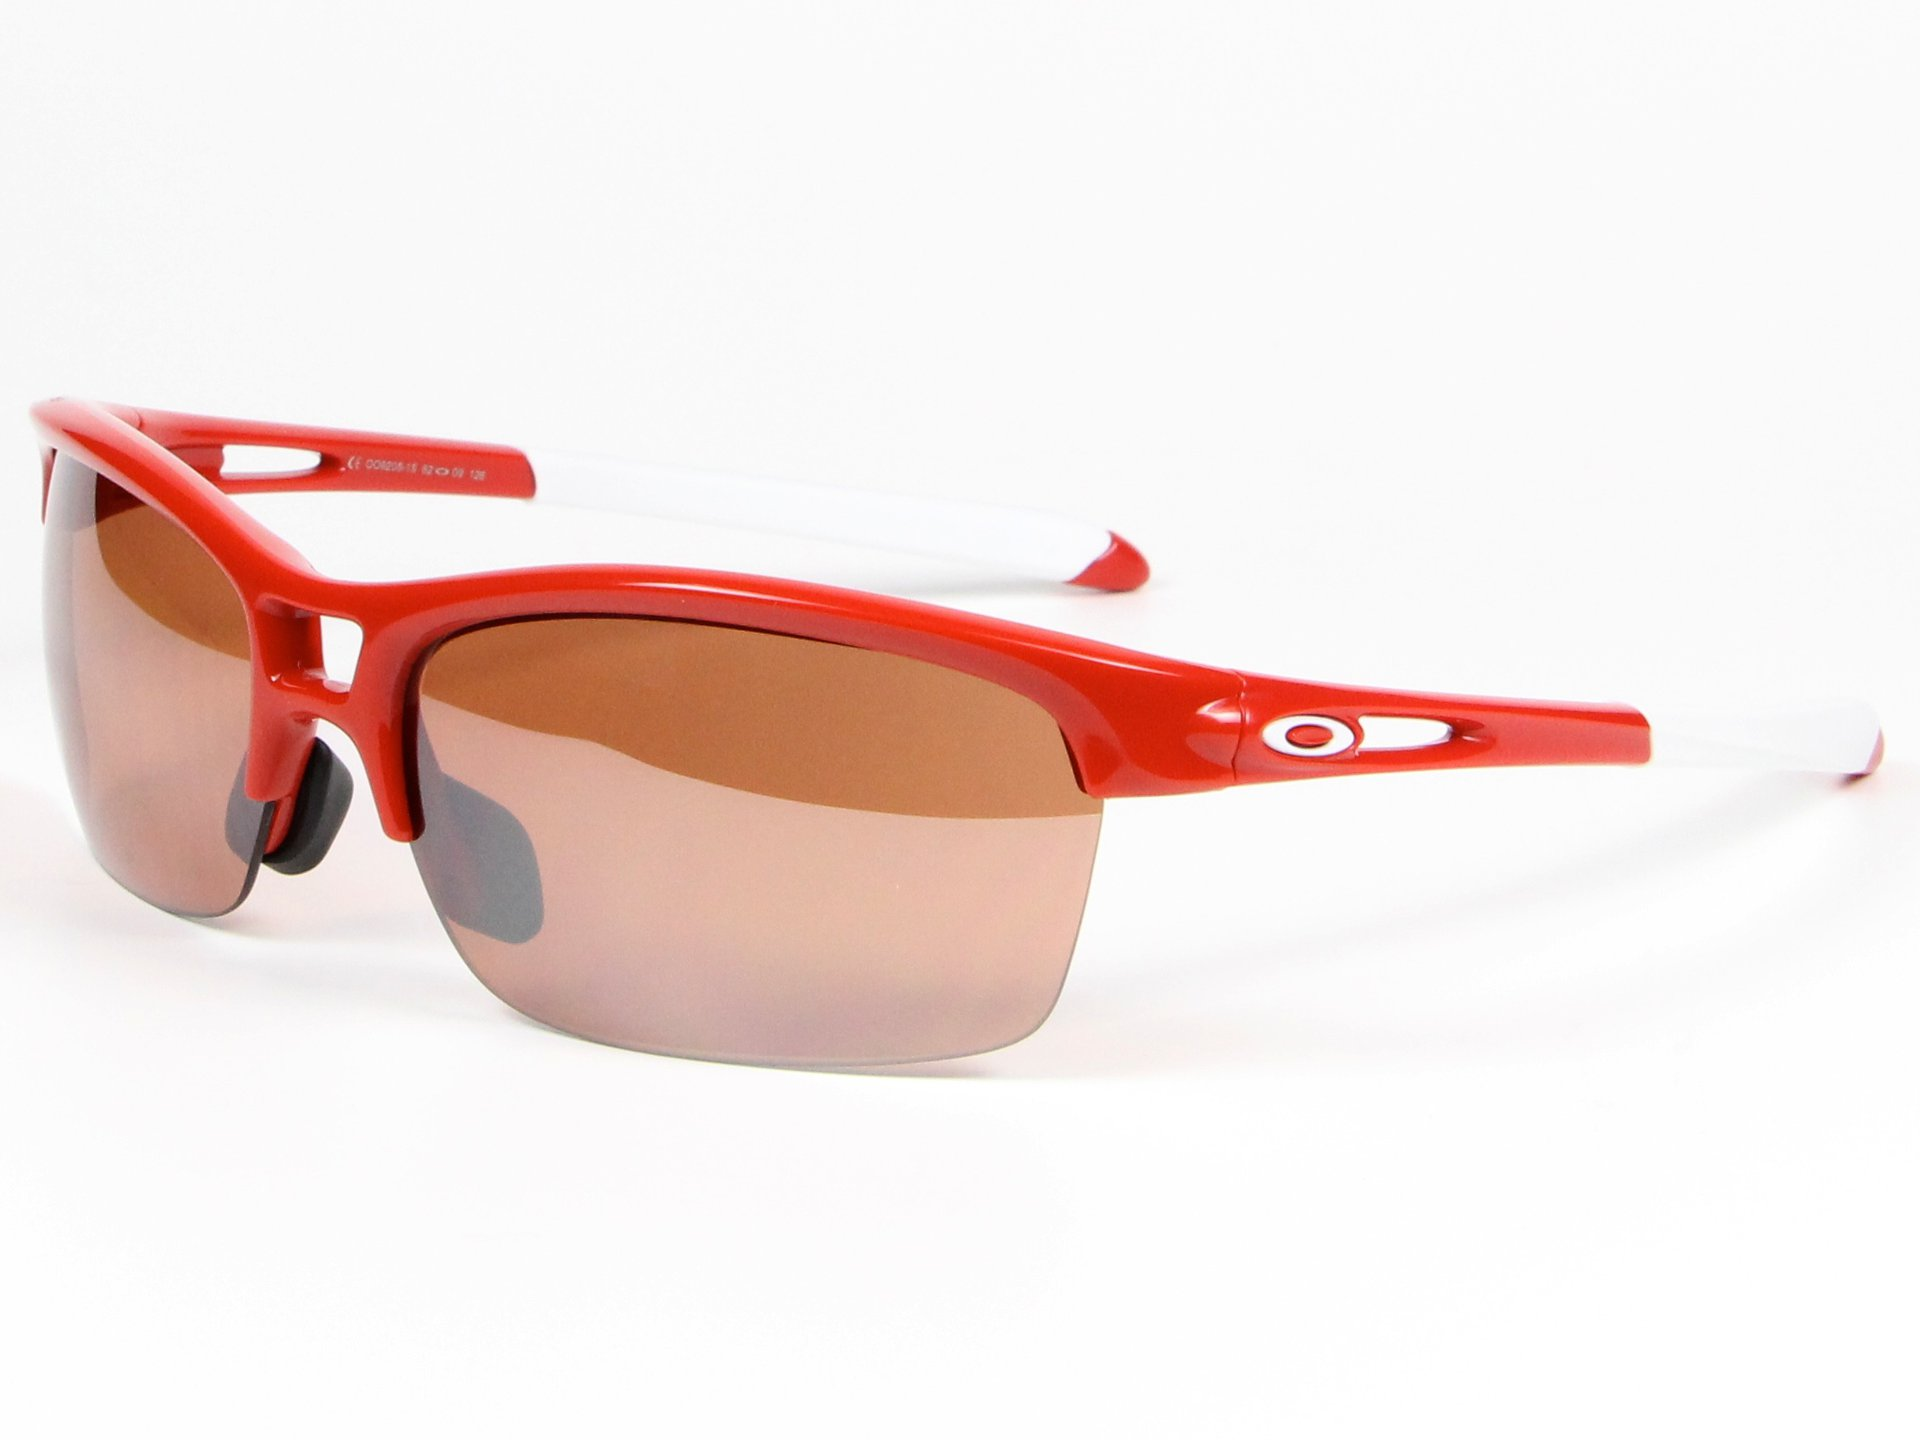 OAKLEY RPM SQUARED OO9205-15